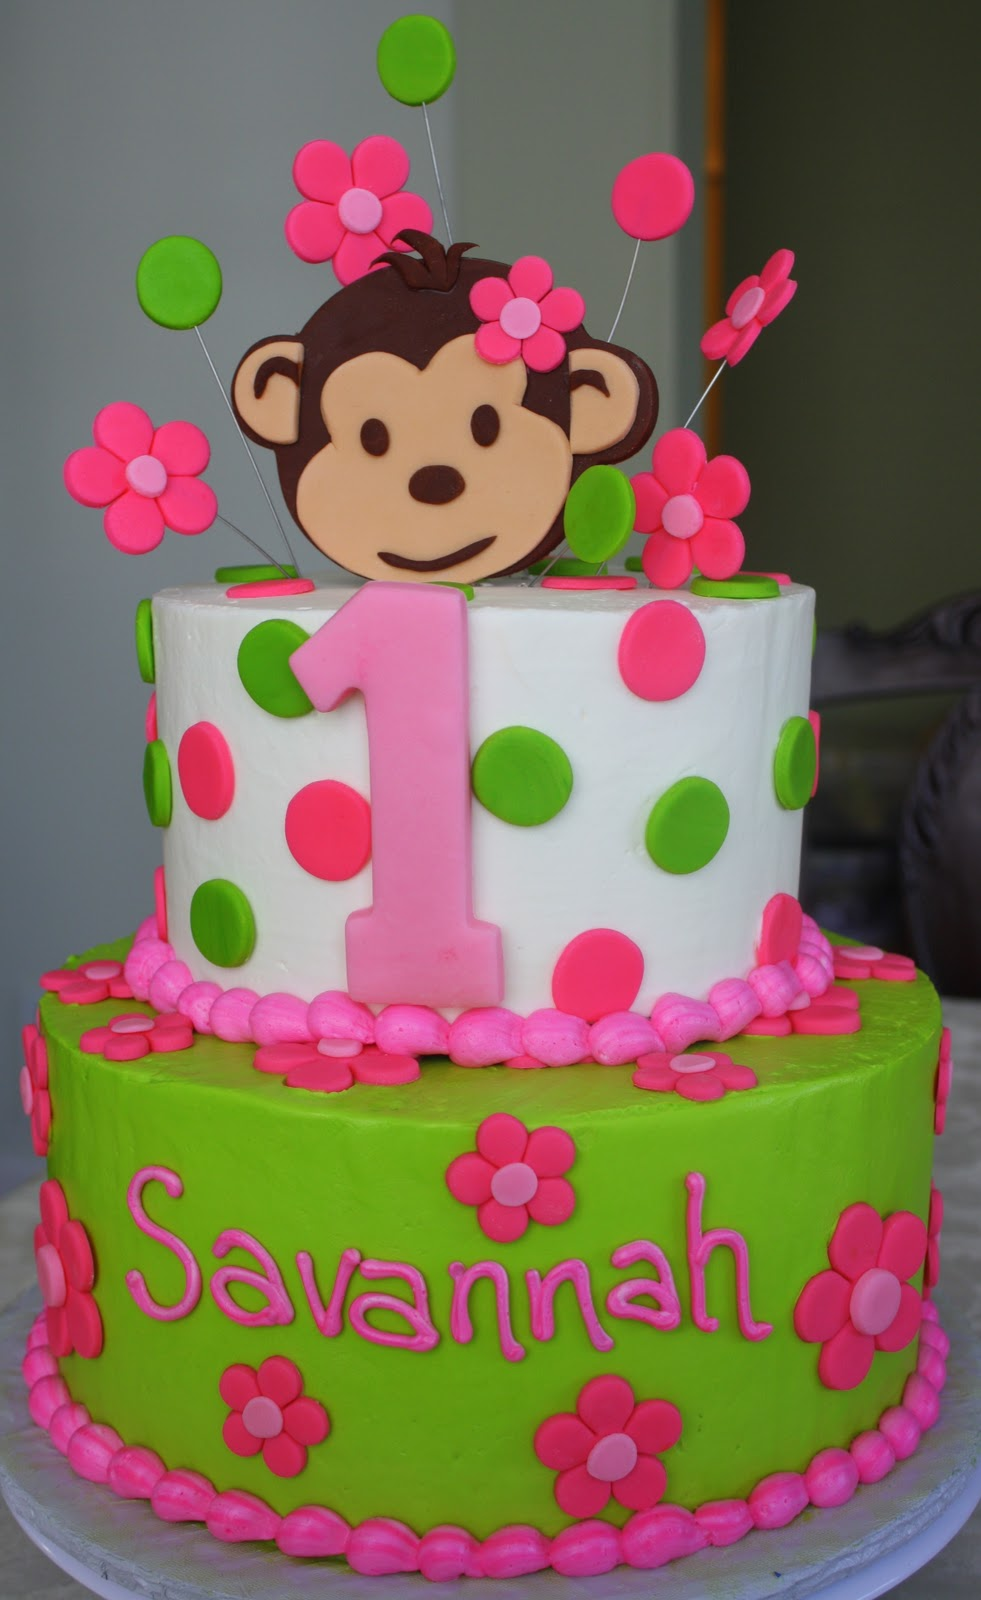 1st Birthday Decorations Monkey Image Inspiration of Cake and